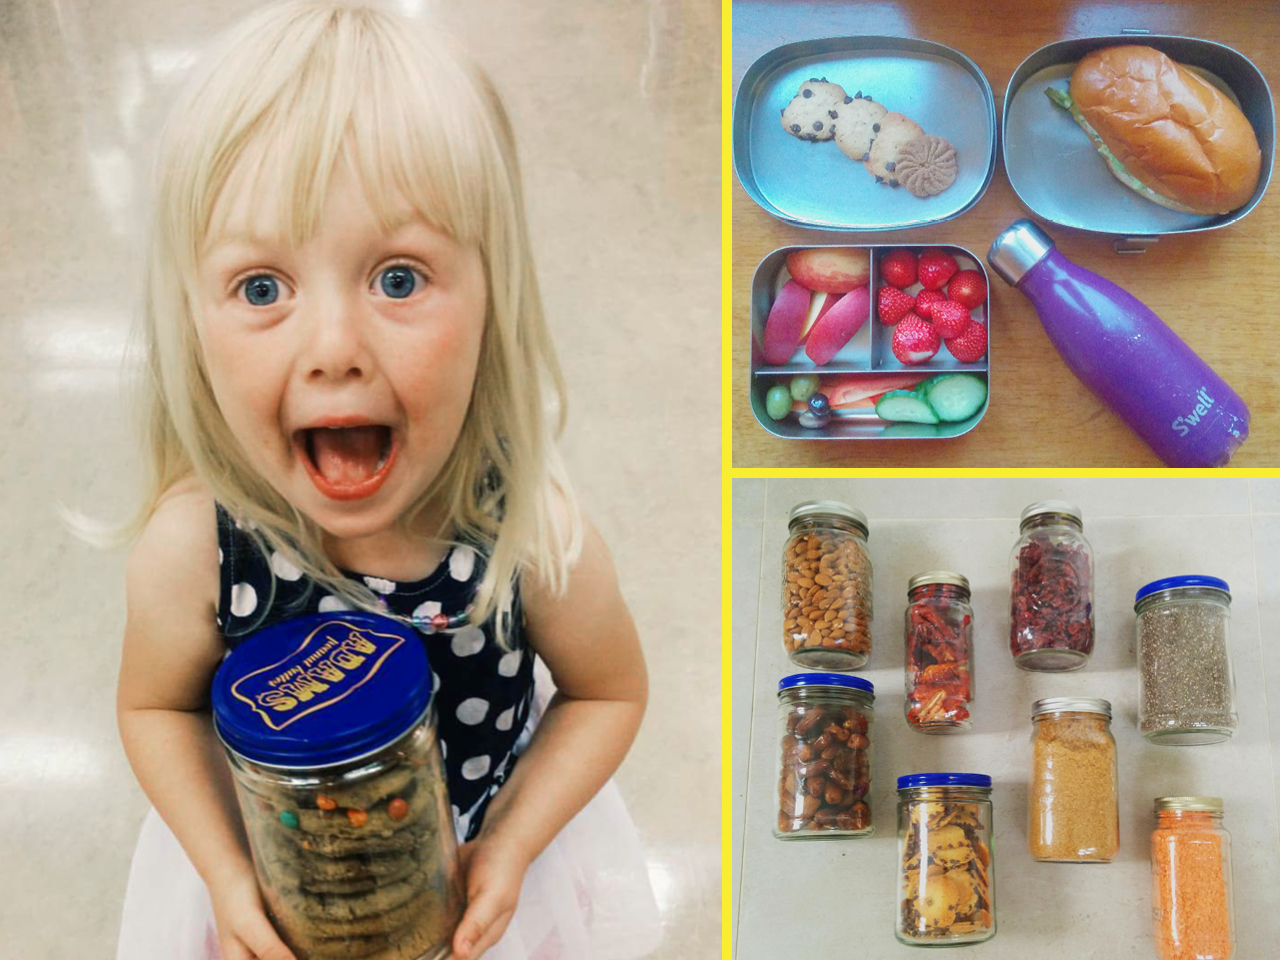 Jars holding food items and a little girl holding a jar looking excited